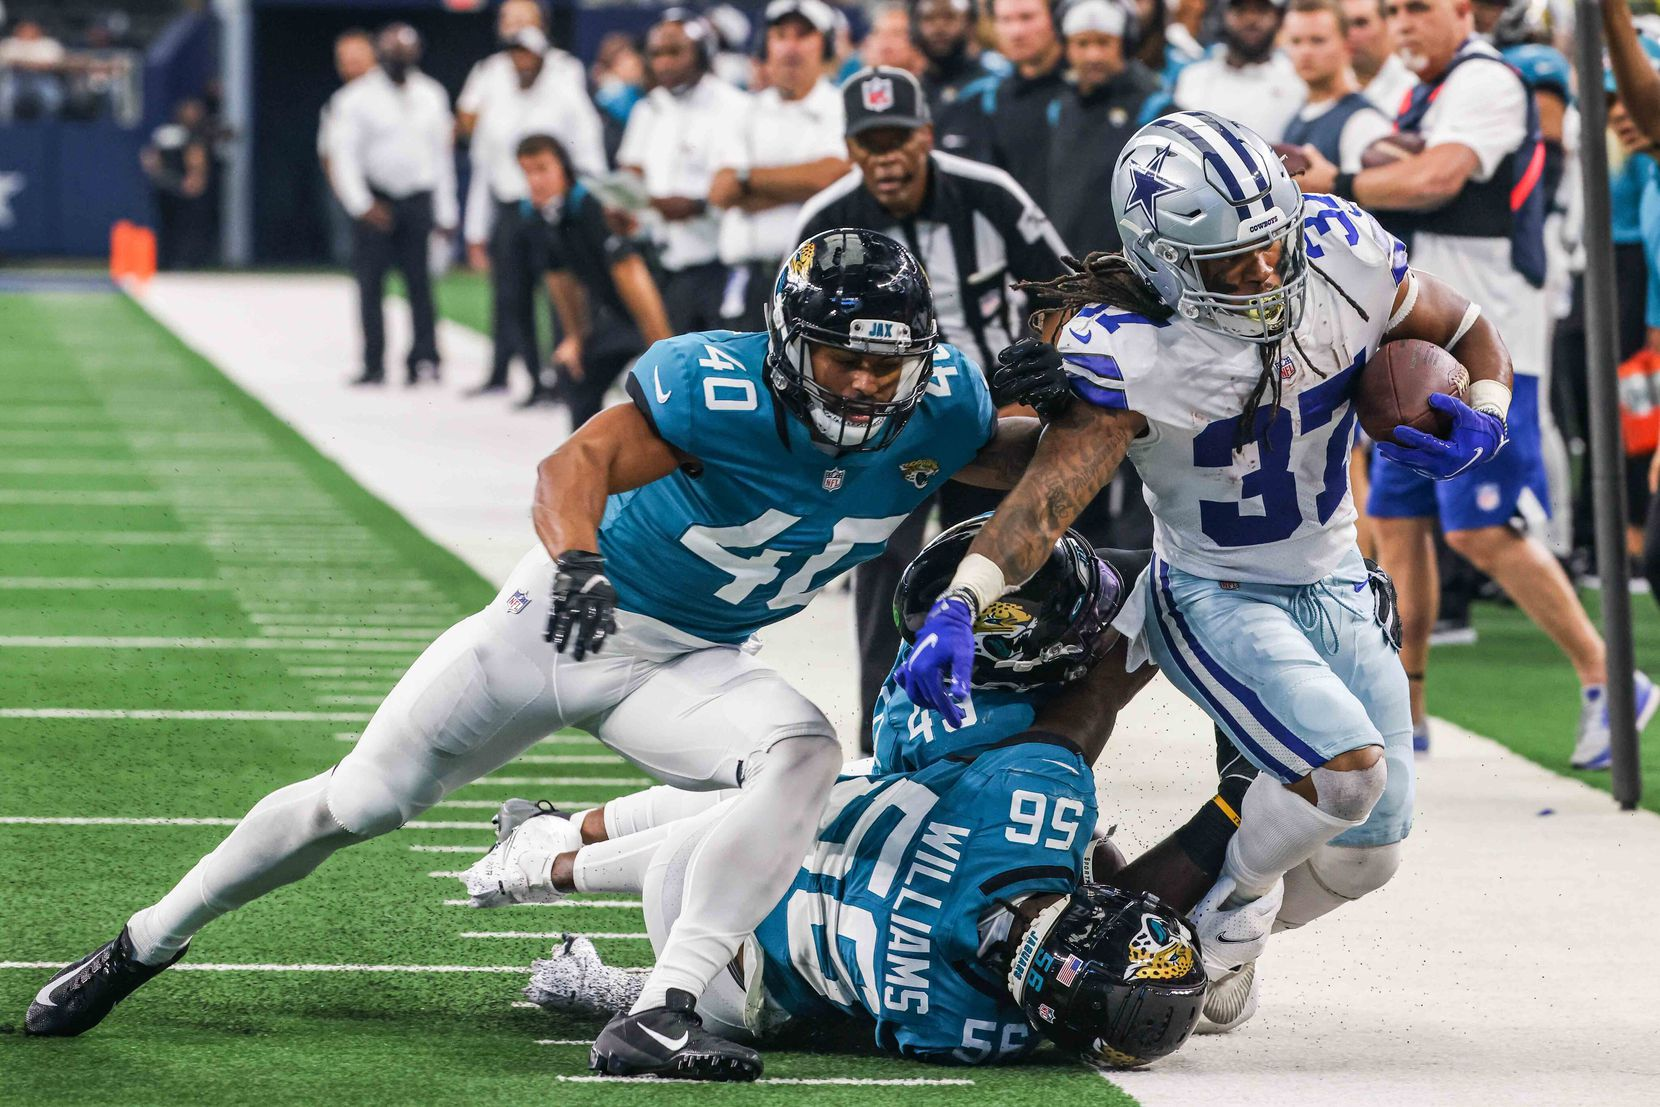 Dallas Cowboys running back JaQuan Hardy, 37, gets pushed out of the sideline by Jacksonville Jaguars defense during a preseason game at AT&T stadium in Arlington on Sunday, August 29, 2021.